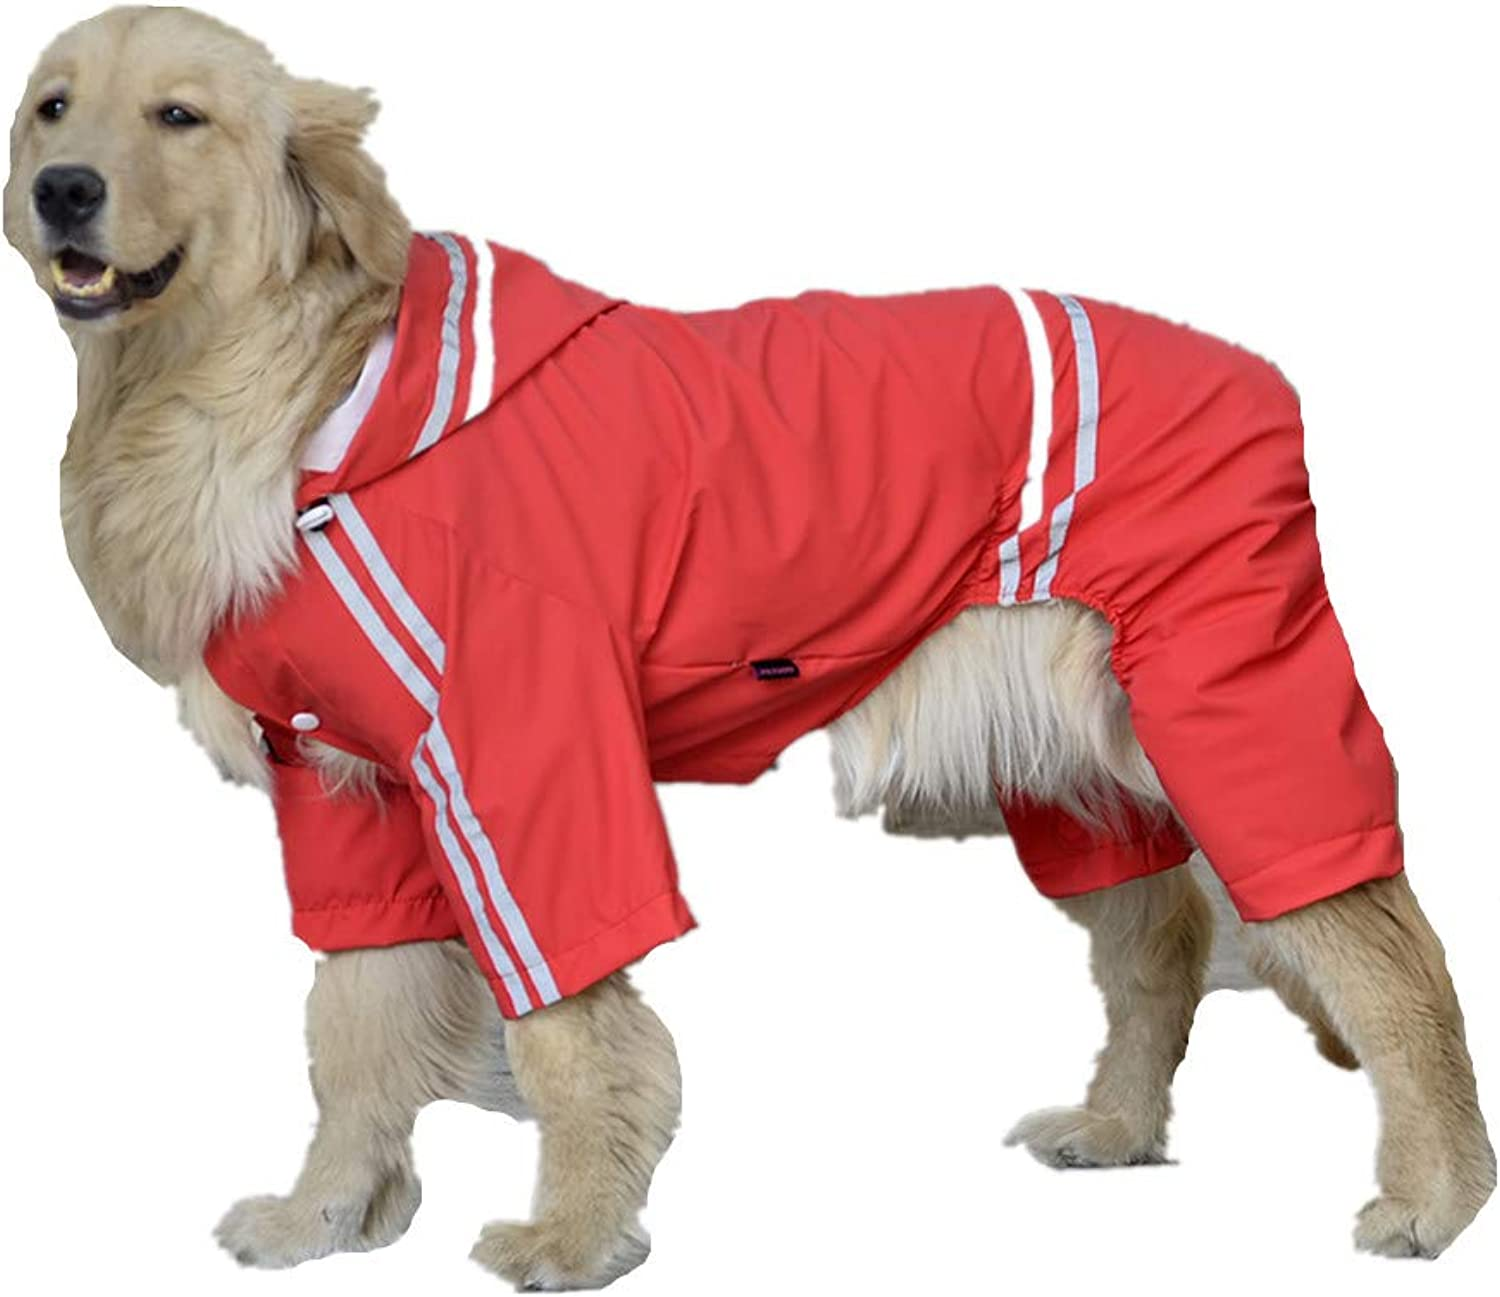 Pet Dog Raincoat Collar Hole Waterproof Hooded Coat Reflective Striped Jacket Suitable for Small, Medium and Large Dogs Red